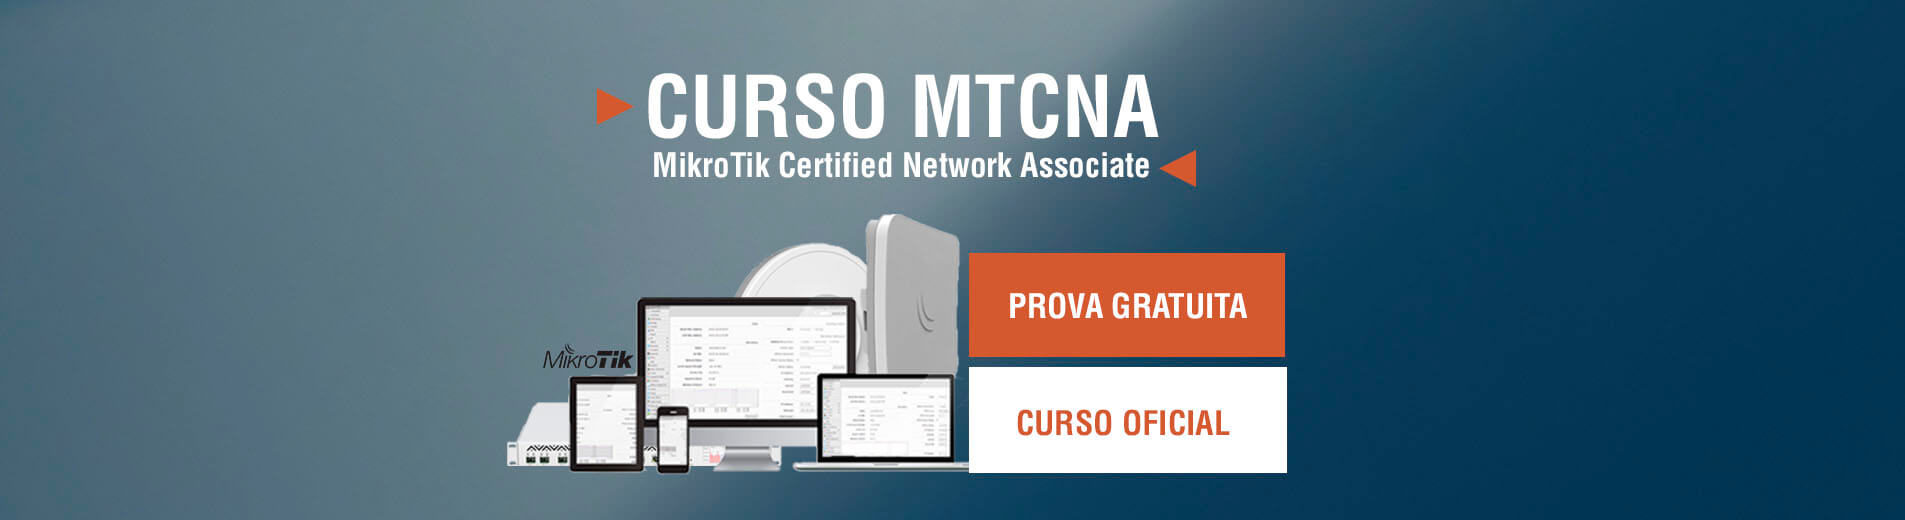 MTCNA - MikroTik Certified Network Associate